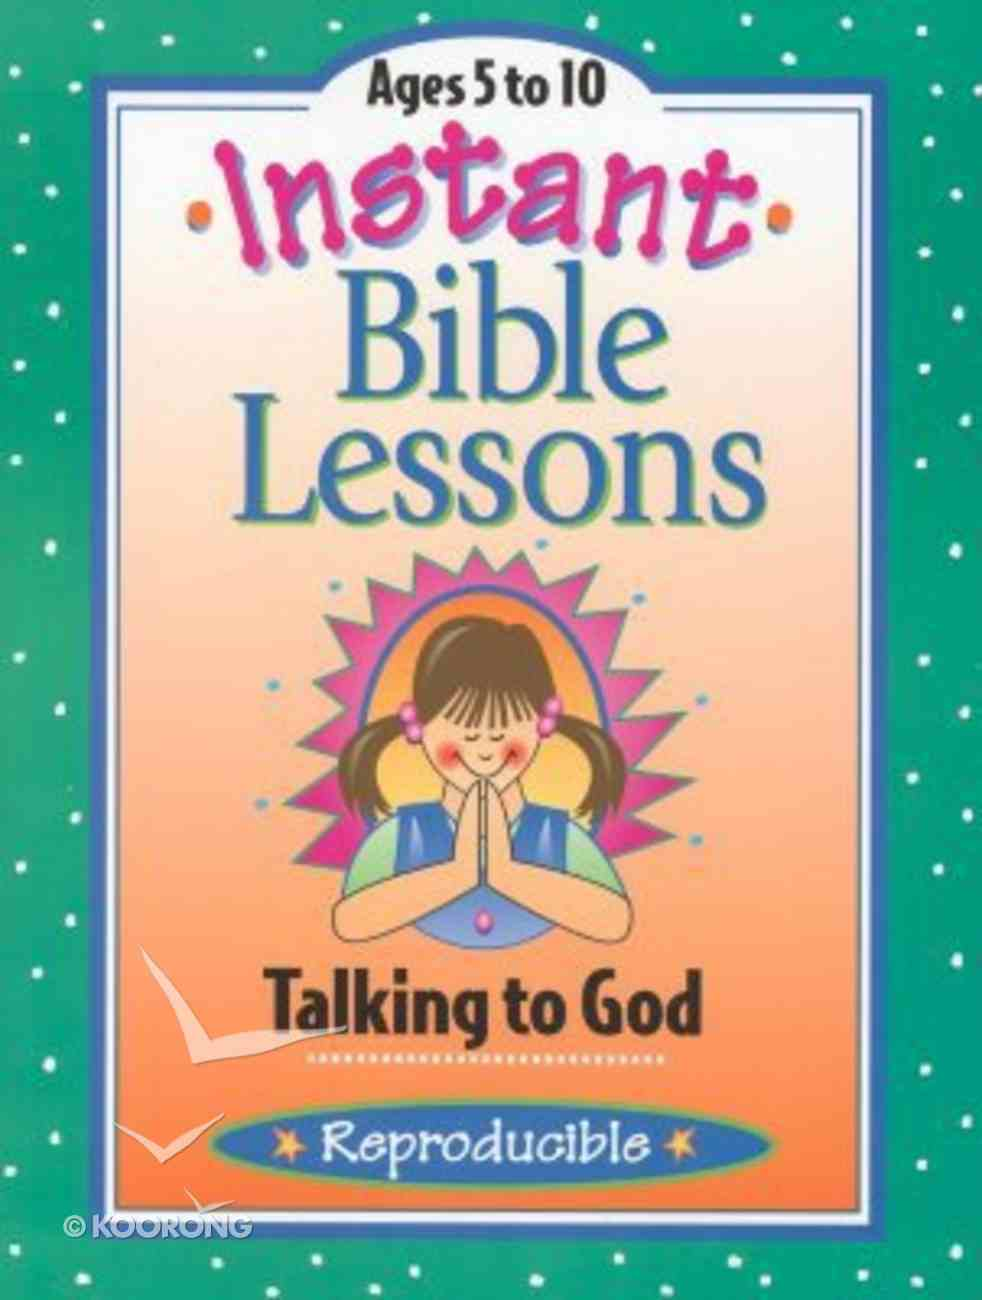 Talking to God (Reproducible) (Instant Bible Lessons Series) Paperback